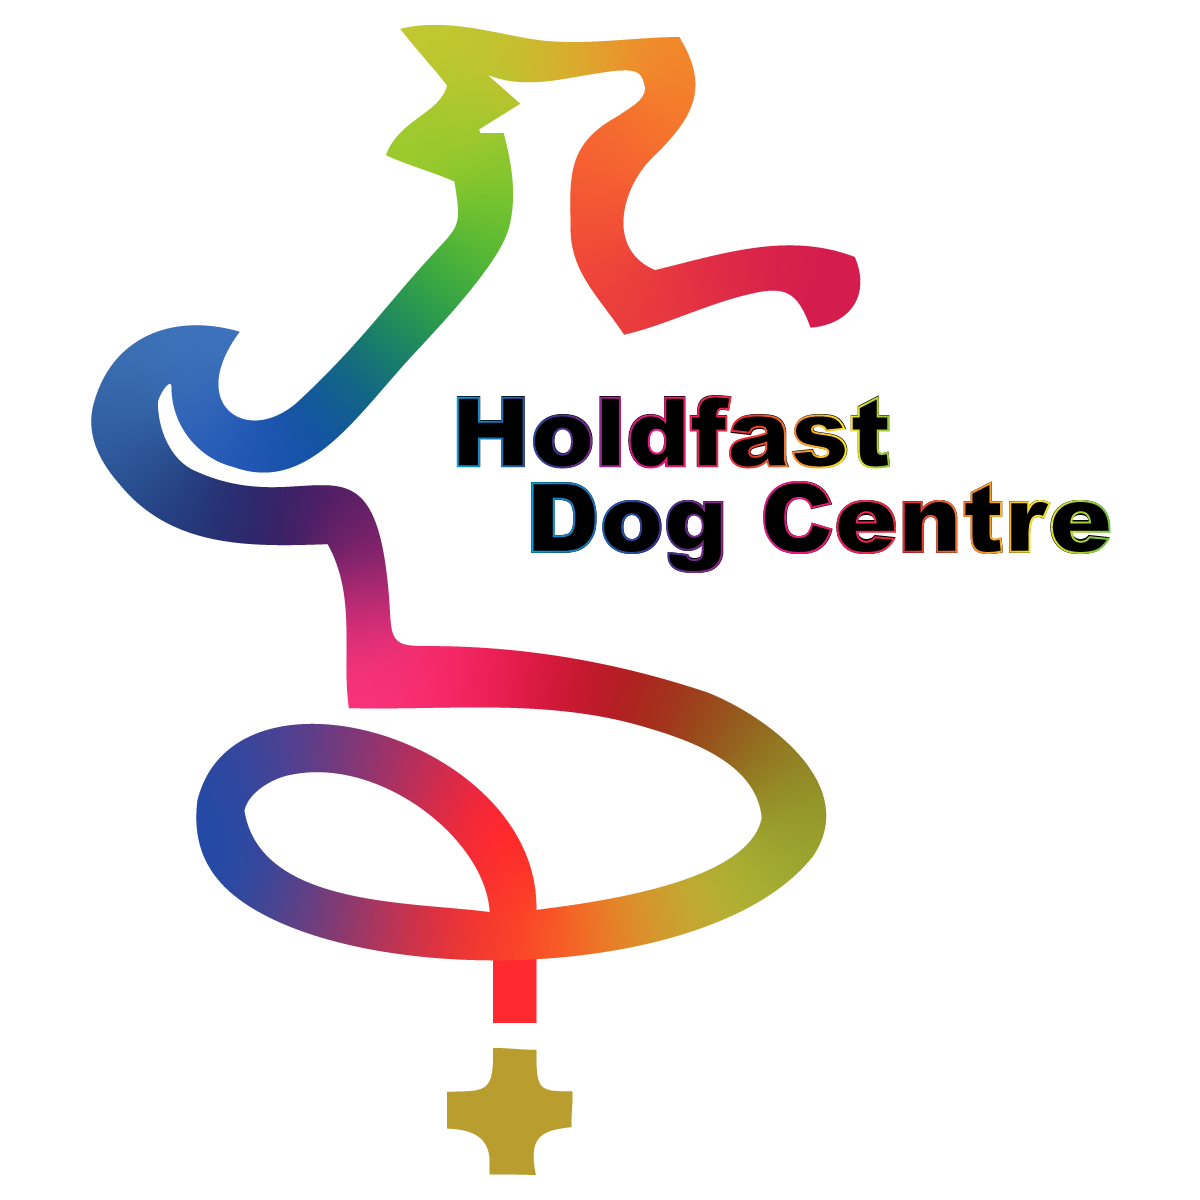 Holdfast Dog Centre